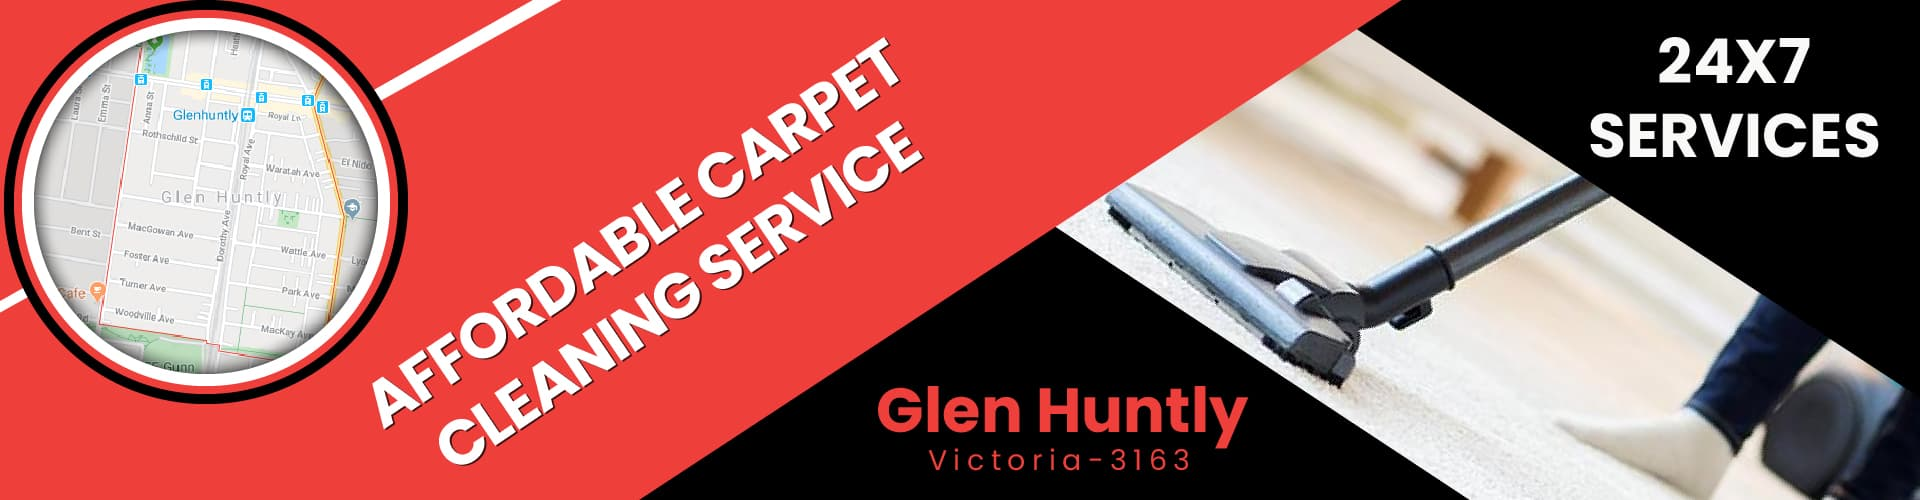 Carpet Cleaning Glen Huntly